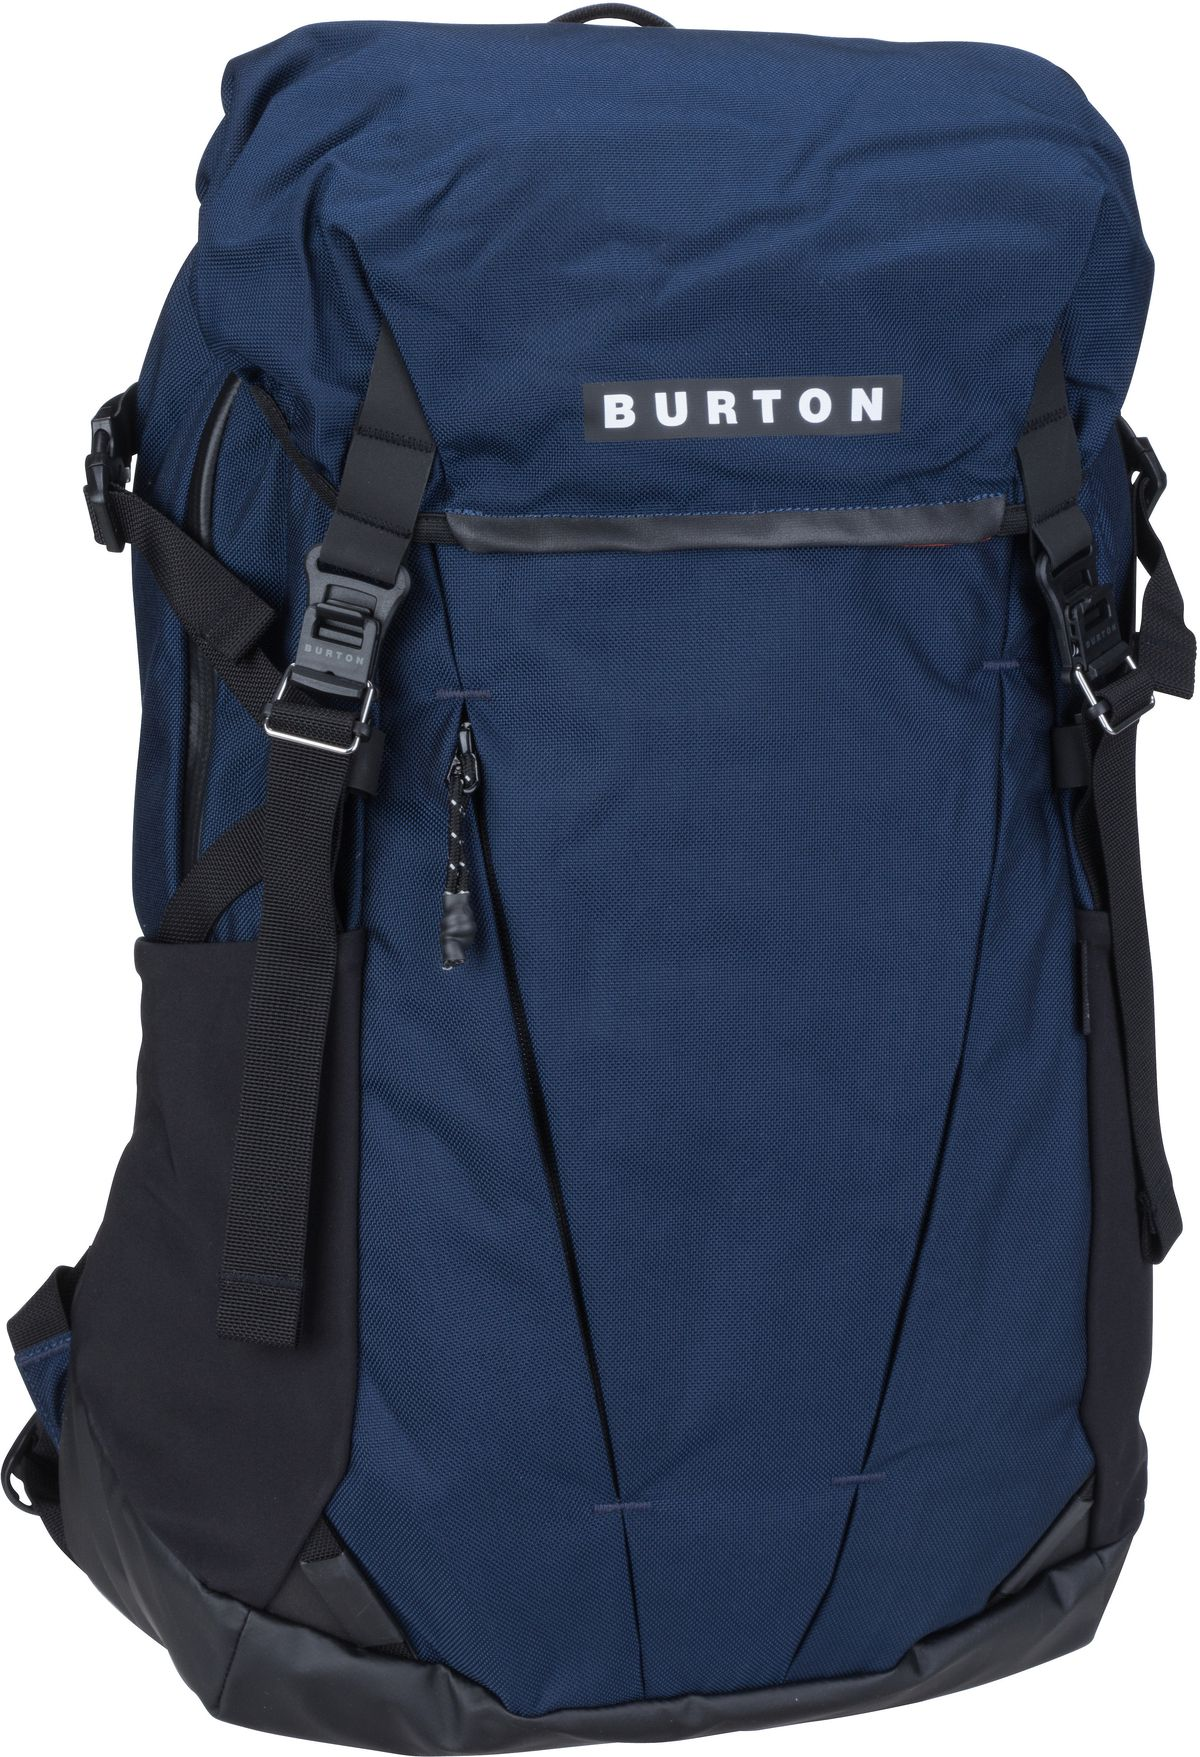 Laptoprucksack Spruce 26L Backpack Dress Blue Ballistic Cordura (26 Liter)